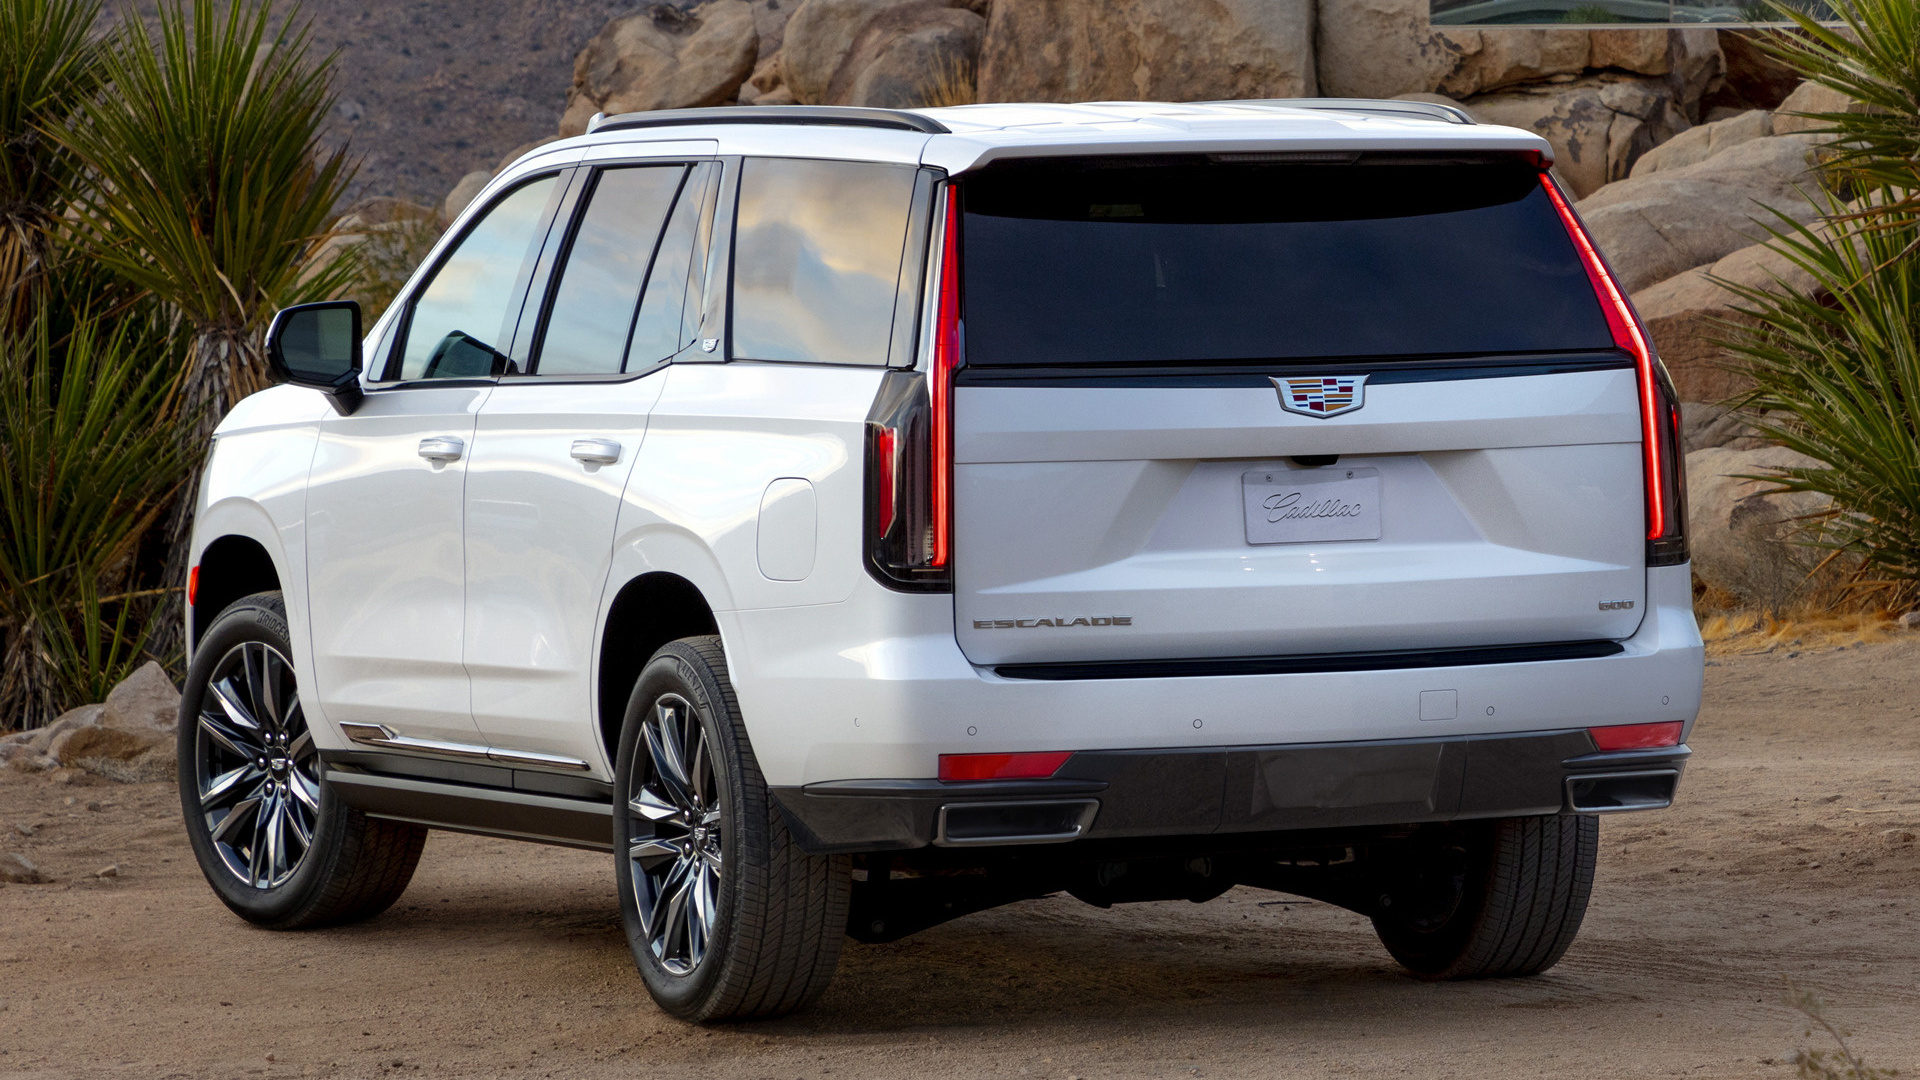 2021 cadillac escalade sport  wallpapers and hd images